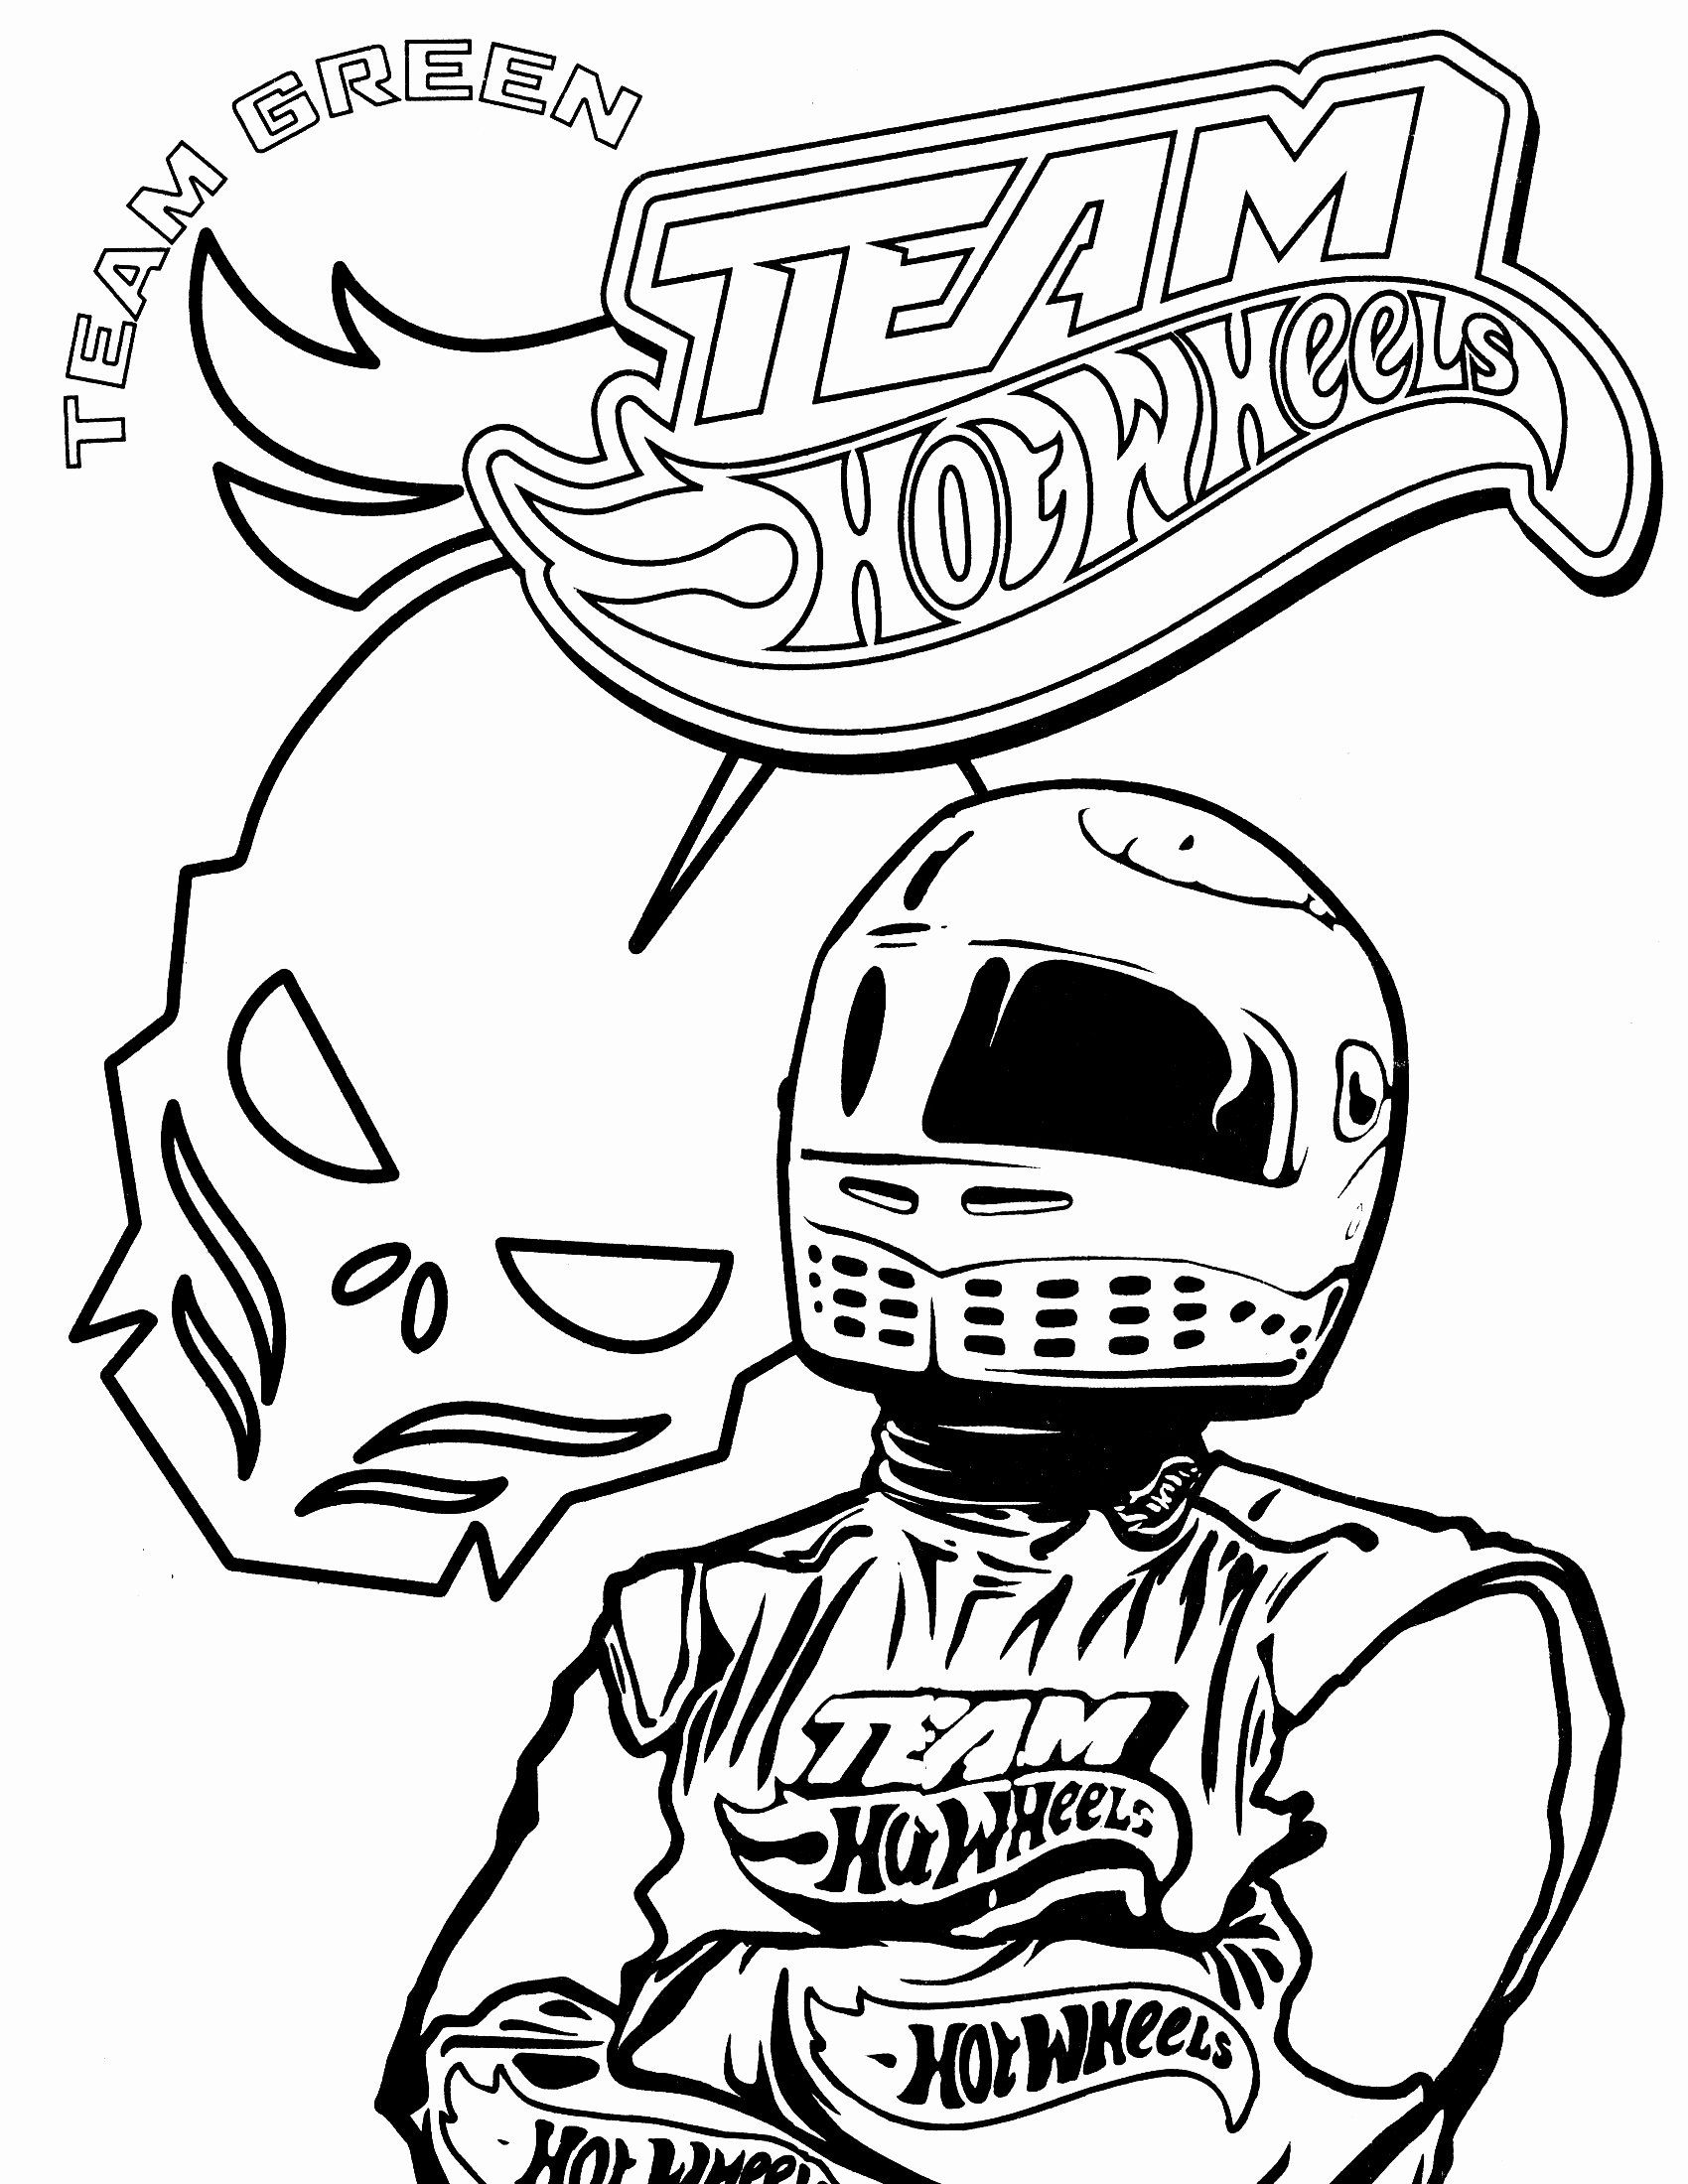 Hot Wheel Coloring Page Inspirational Hot Wheels Coloring ...